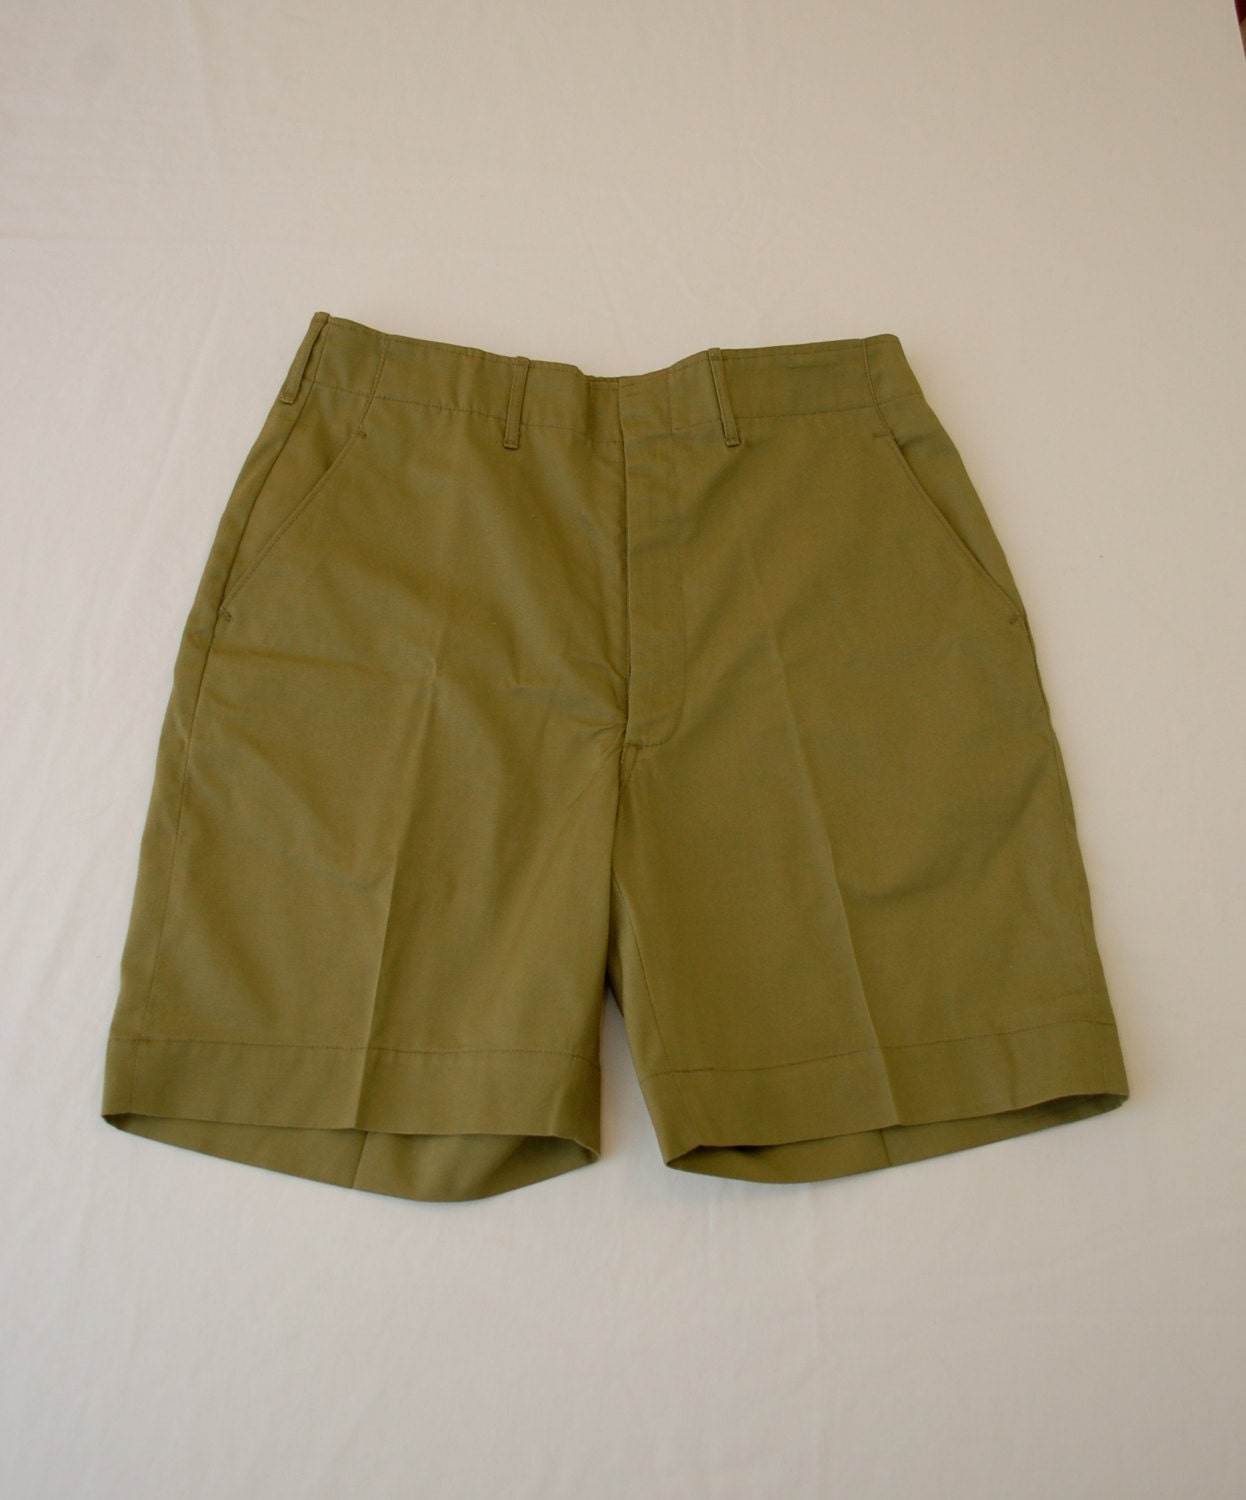 Shorts Uniform 46